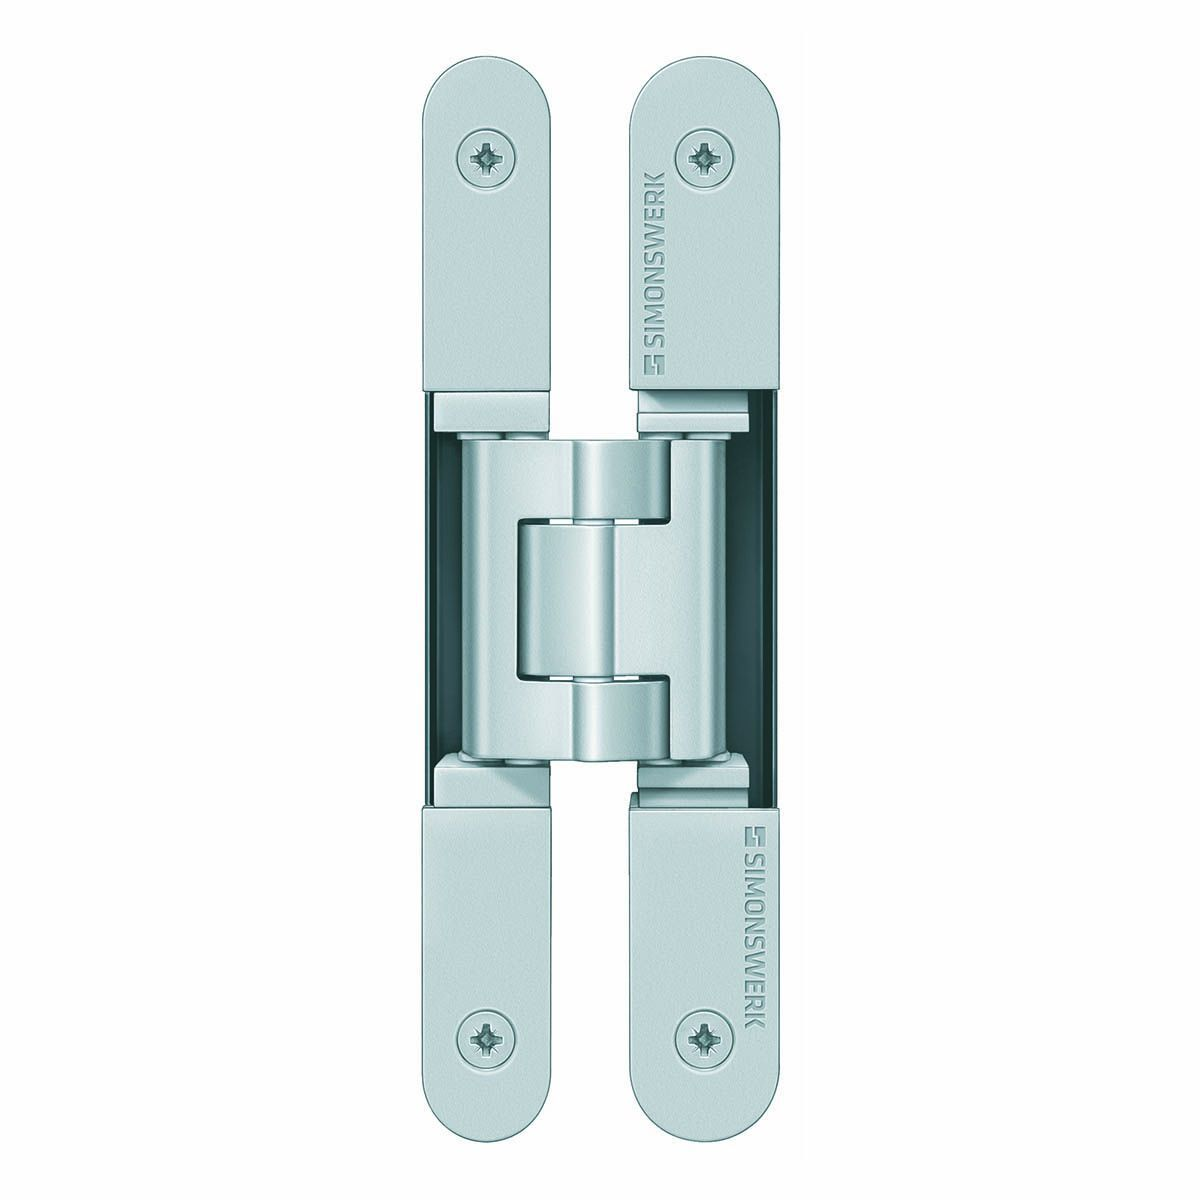 Blum Blum Compact 1 3 8 In Overlay Face Frame Cabinet Hinge 2 Pack Bp3336023180s The Home Depot Face Frame Cabinets Hinges For Cabinets Hinges